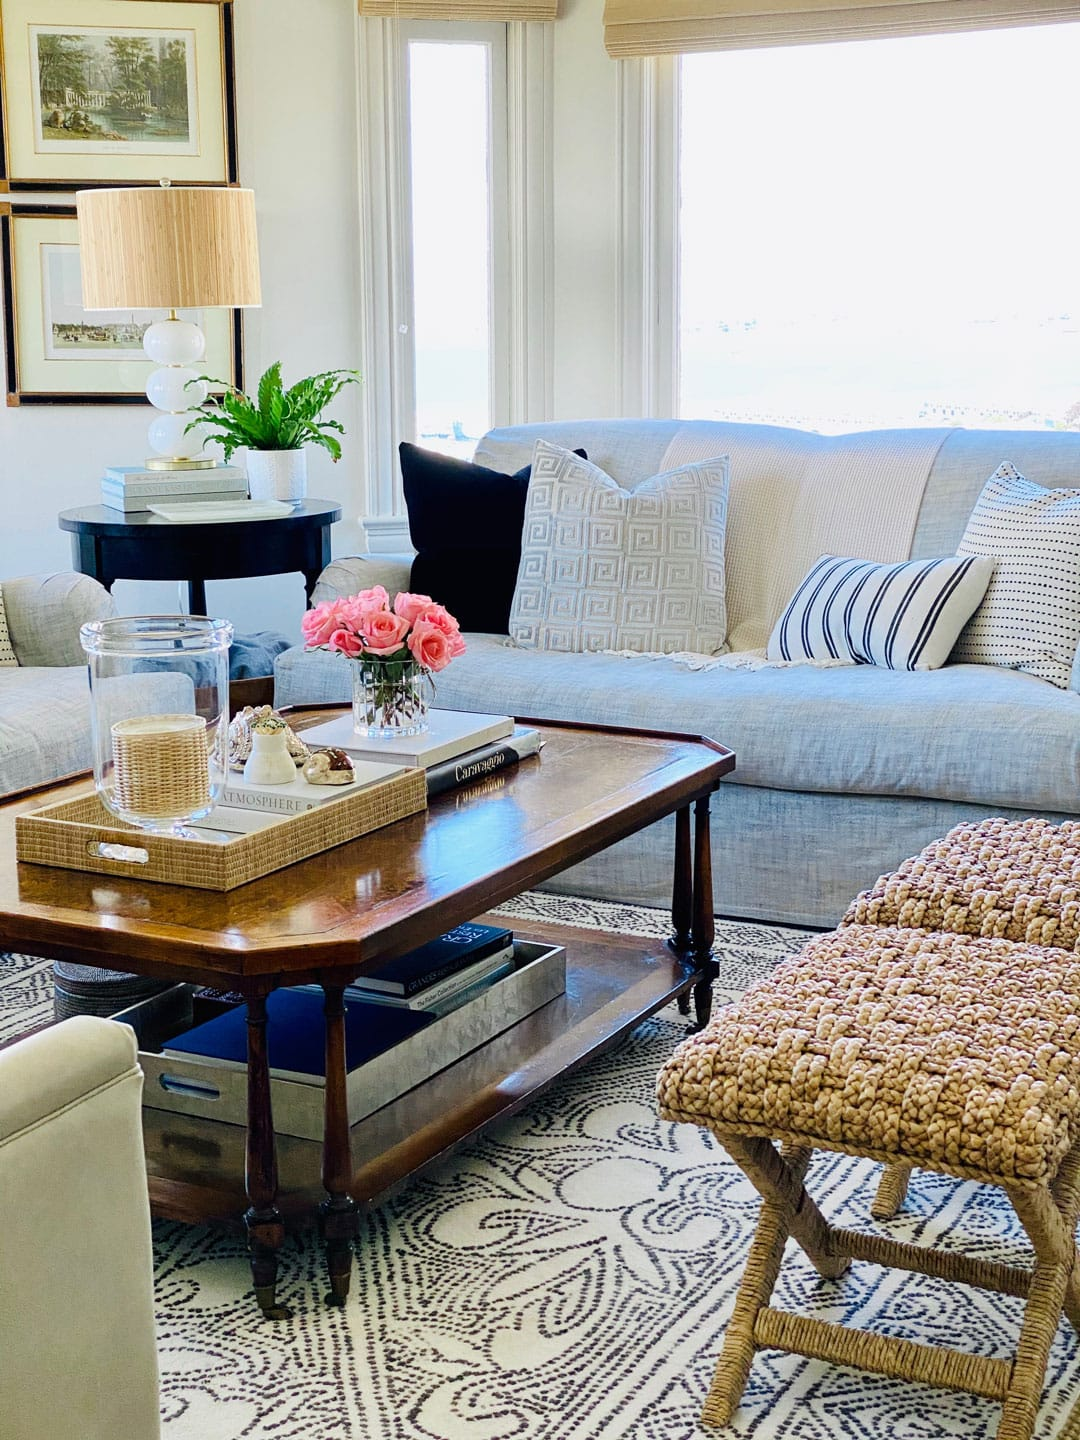 coffee table, stools, flowers, plant, sofa with pillows, lamp